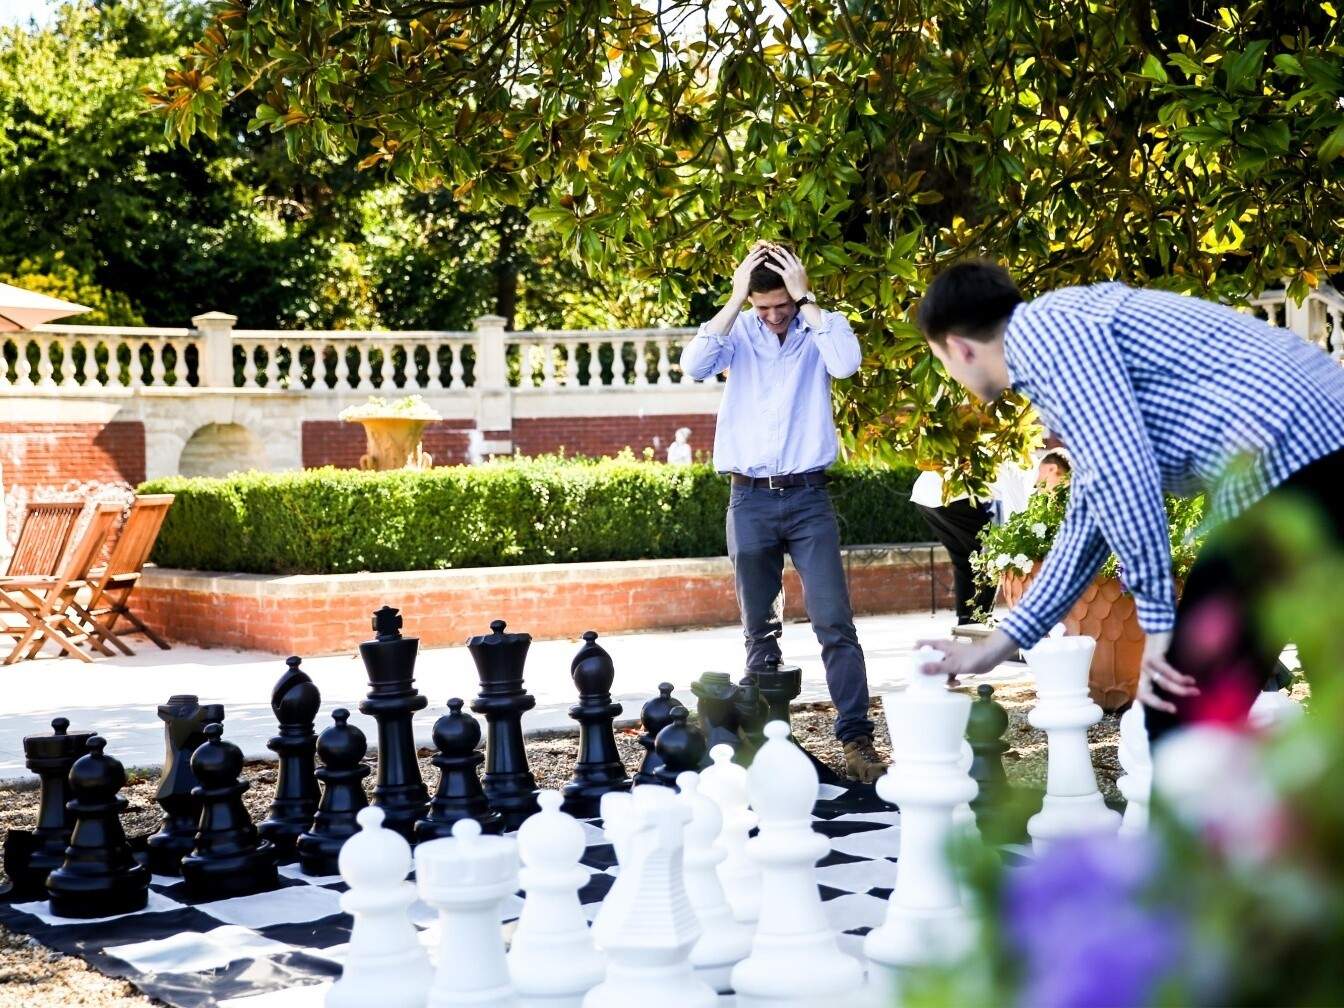 Fetcham summer party giant chess 1